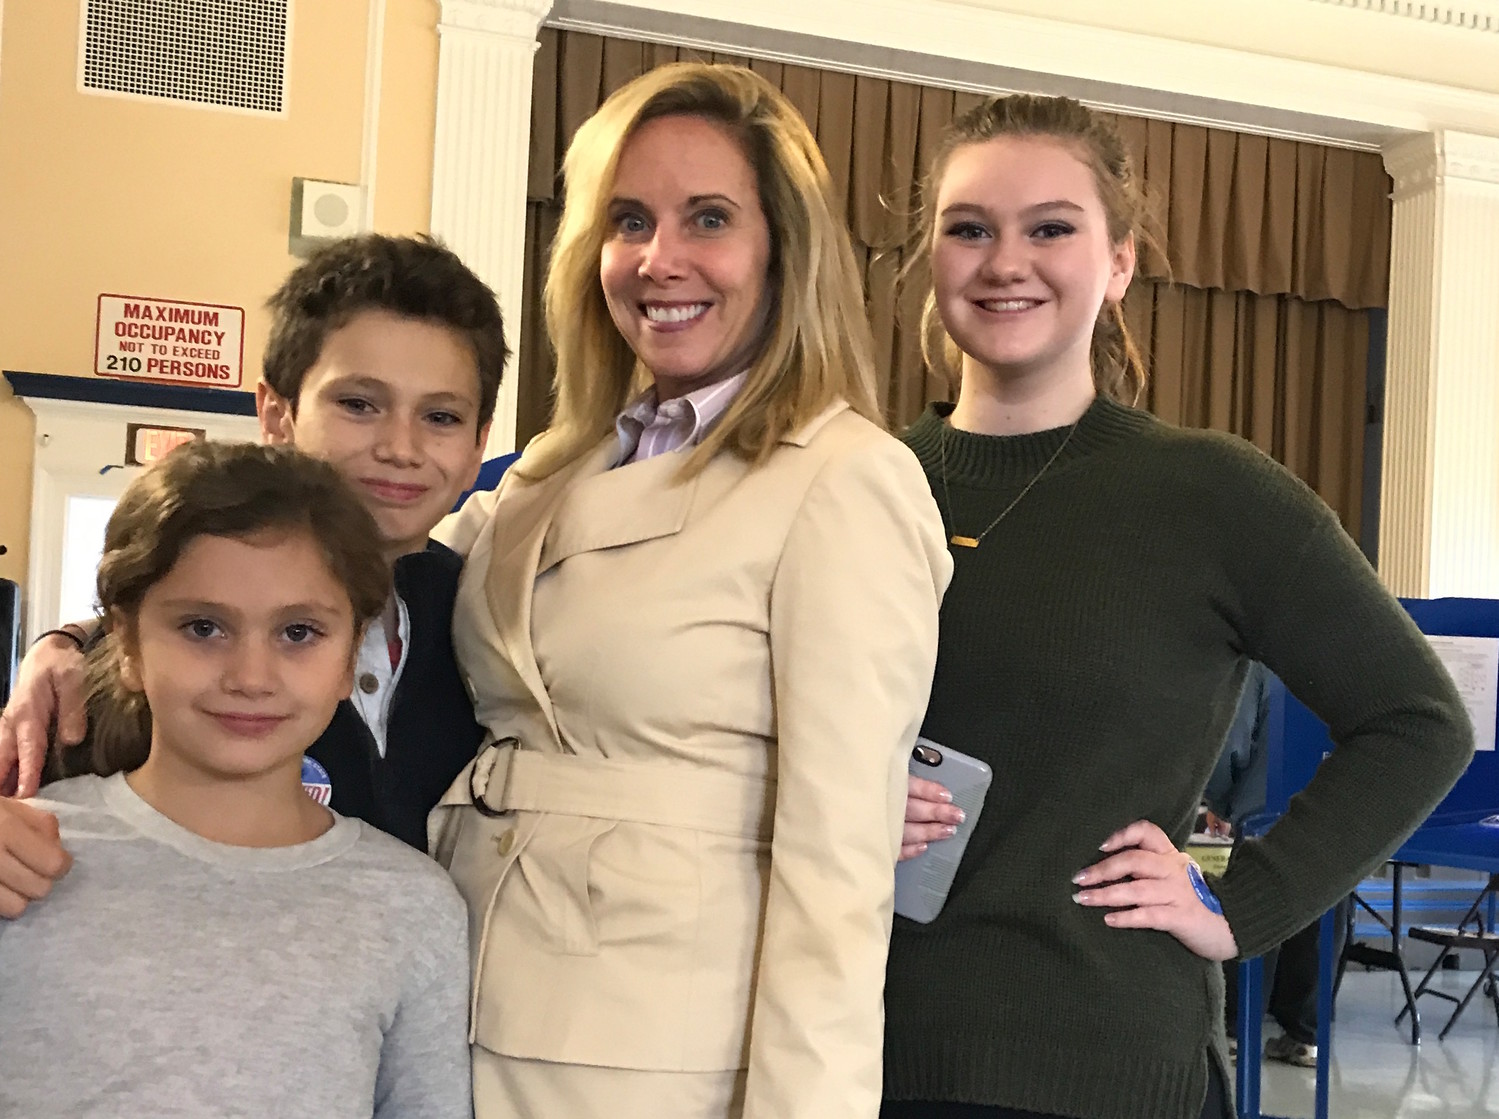 Democrat Laura Gillen pulled off a historic victory in the Town of Hempstead on Tuesday night, defeating incumbent Anthony Santino. She declared victory along with Laura Curran, of Baldwin, who won the county executive's seat. Gillen voted at Hewitt Elementary School in her hometown of Rockville Centre early on Tuesday.